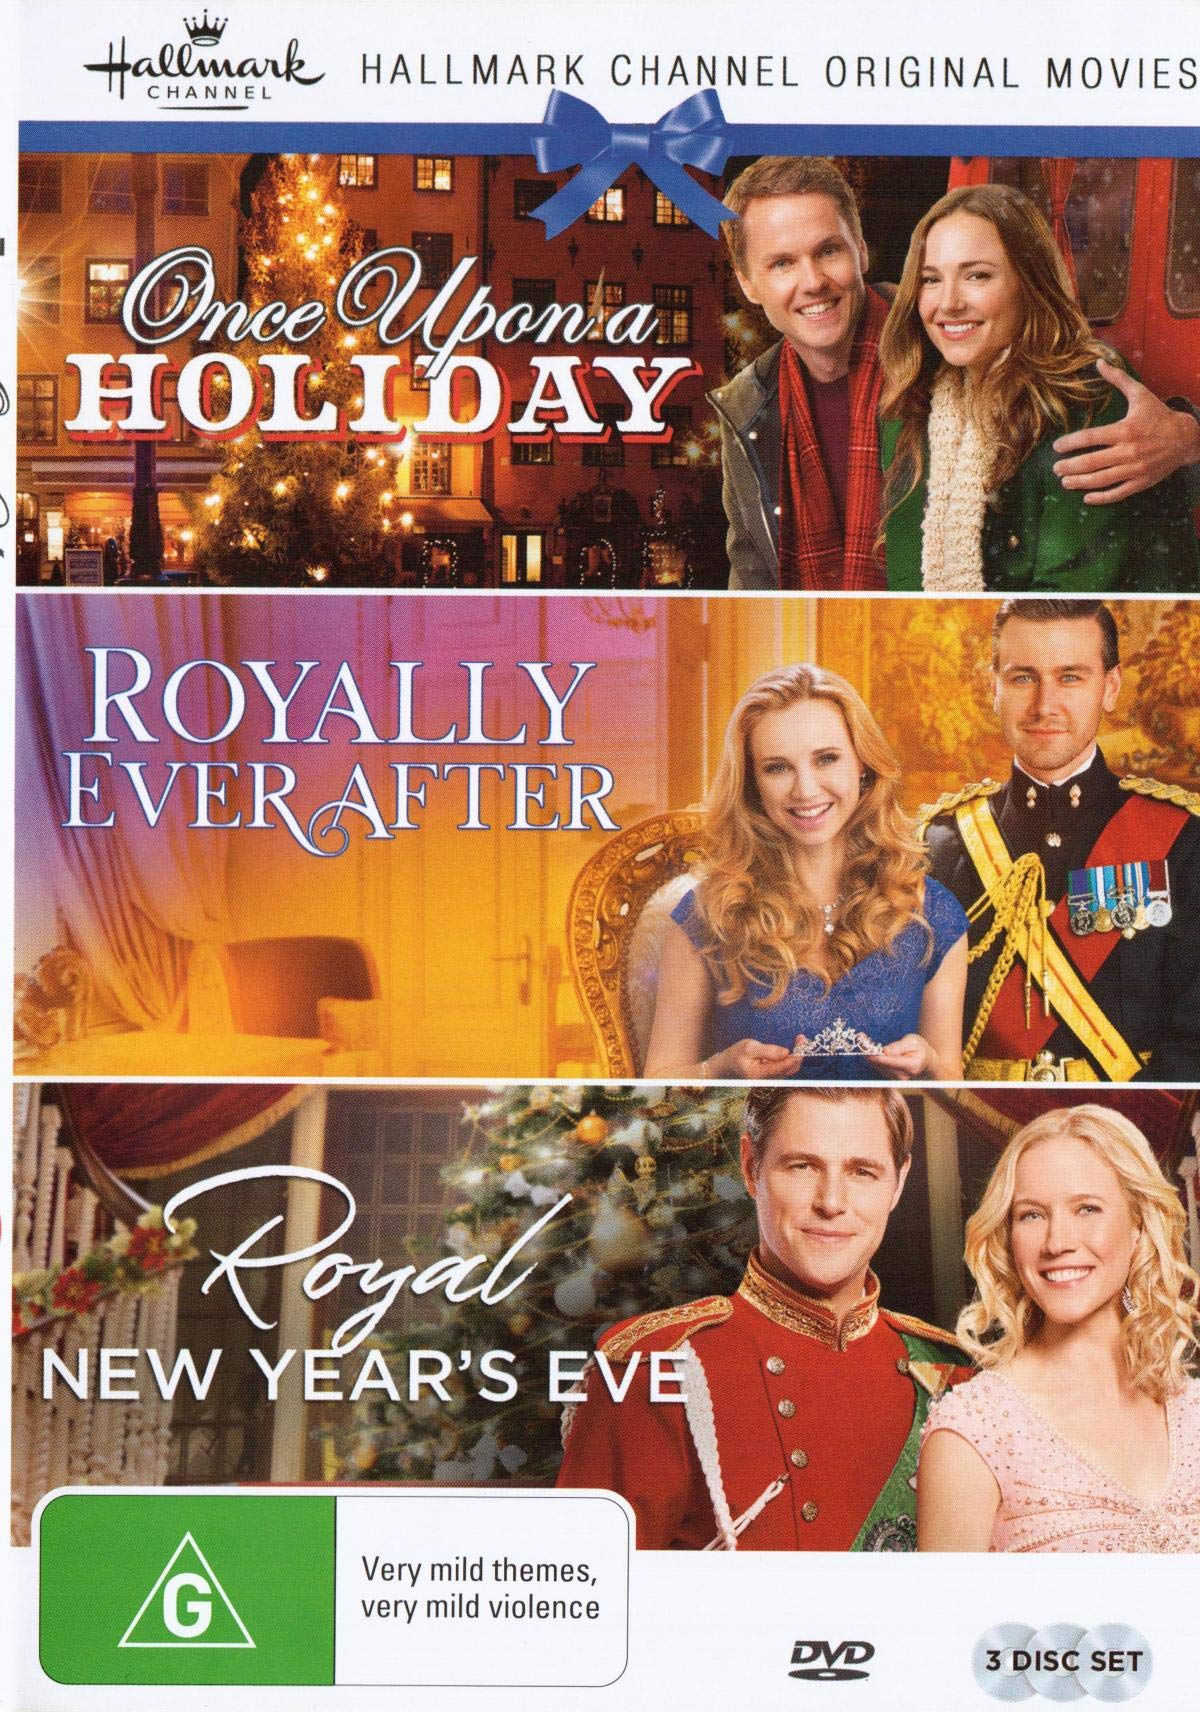 Hallmark Royal 3 Film Collection (Once Upon a Holiday/Royally Ever After/Royal New Years Eve) by Madman Entertainment